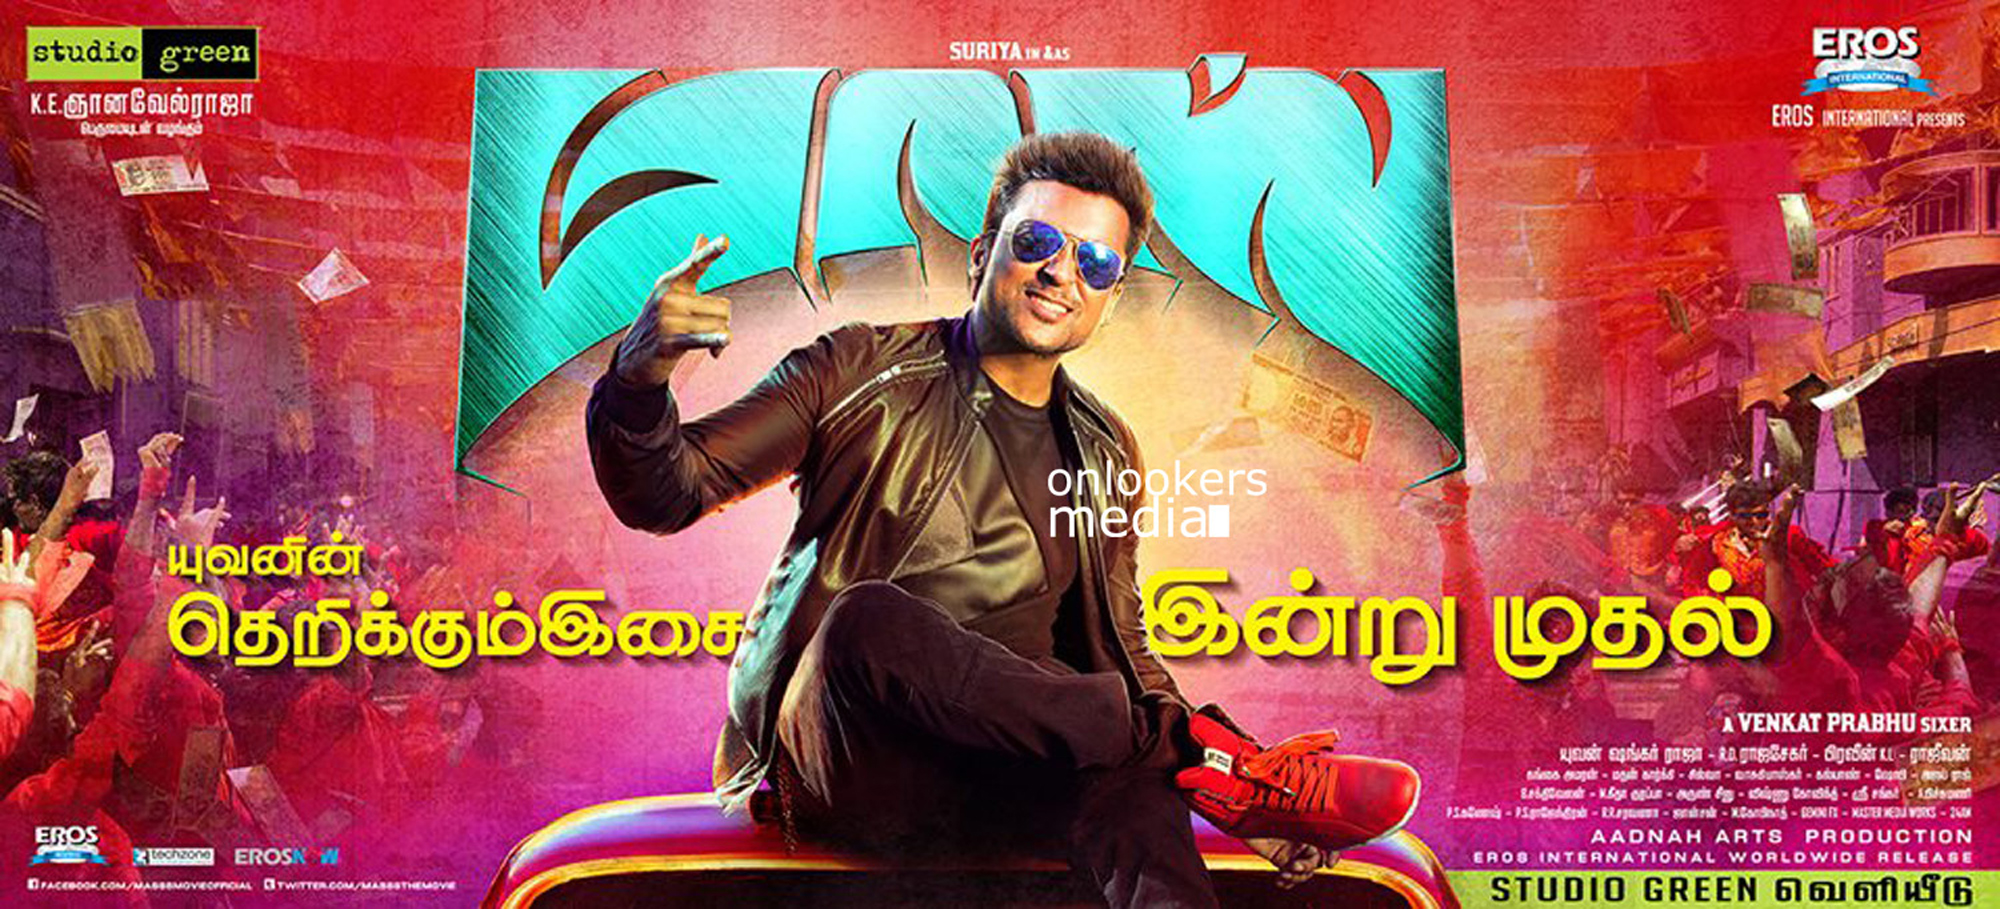 Masss Posters-Stills-Images-Photos-Suriya-Nayanthara-Onlookers Media